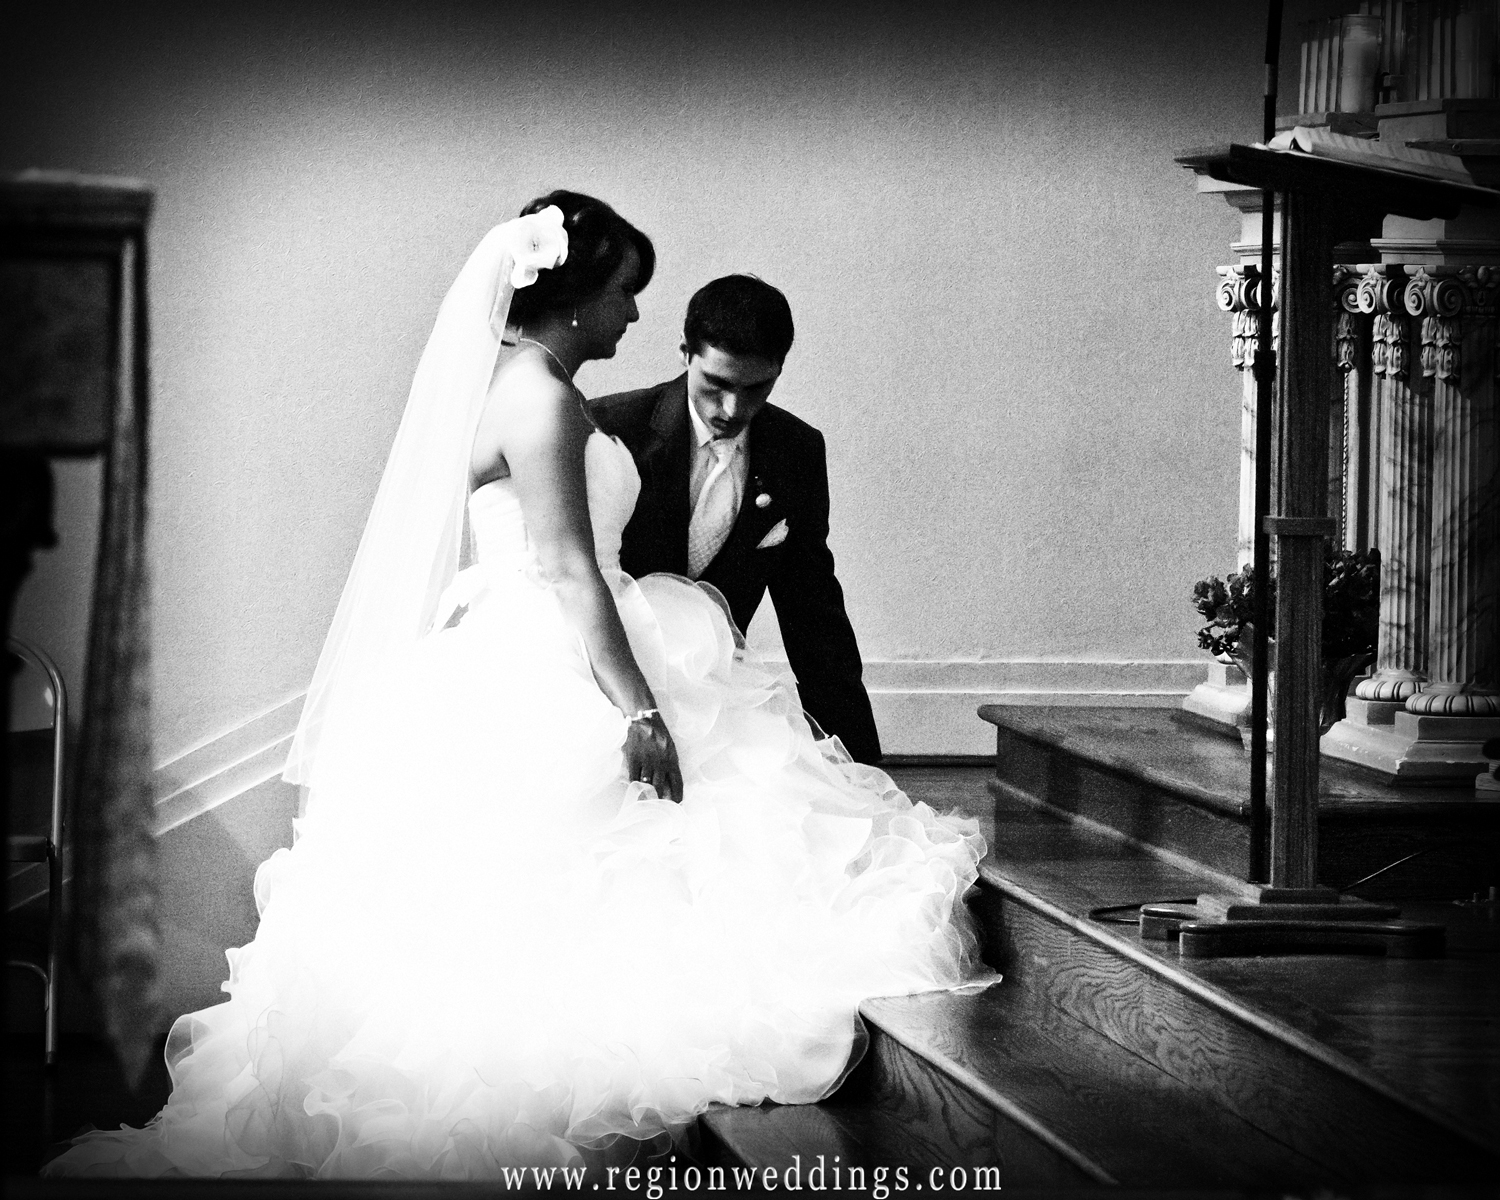 The groom helps the bride up from kneeling during their wedding ceremony at St. John the Evangelist Church.